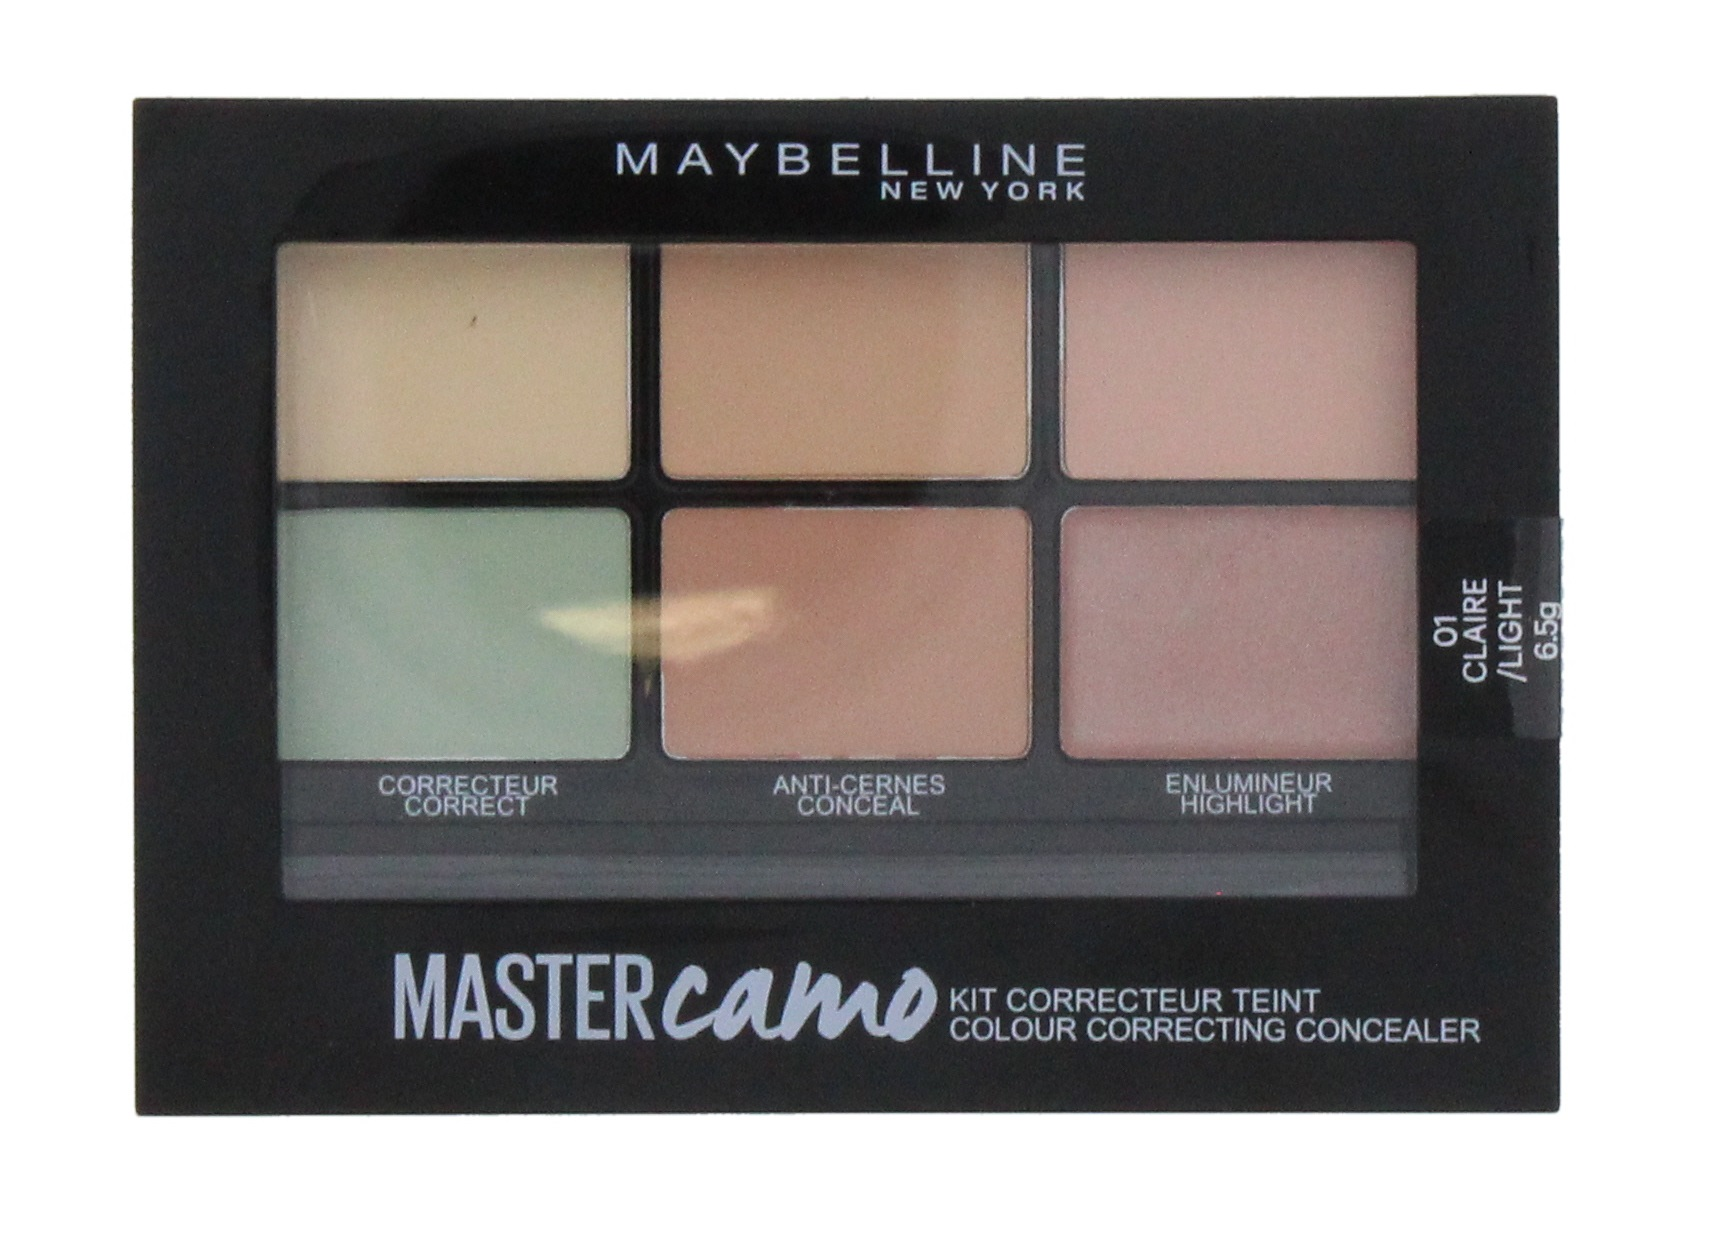 MAYBELLINE CORRECTING CONCEALER KIT CAMO